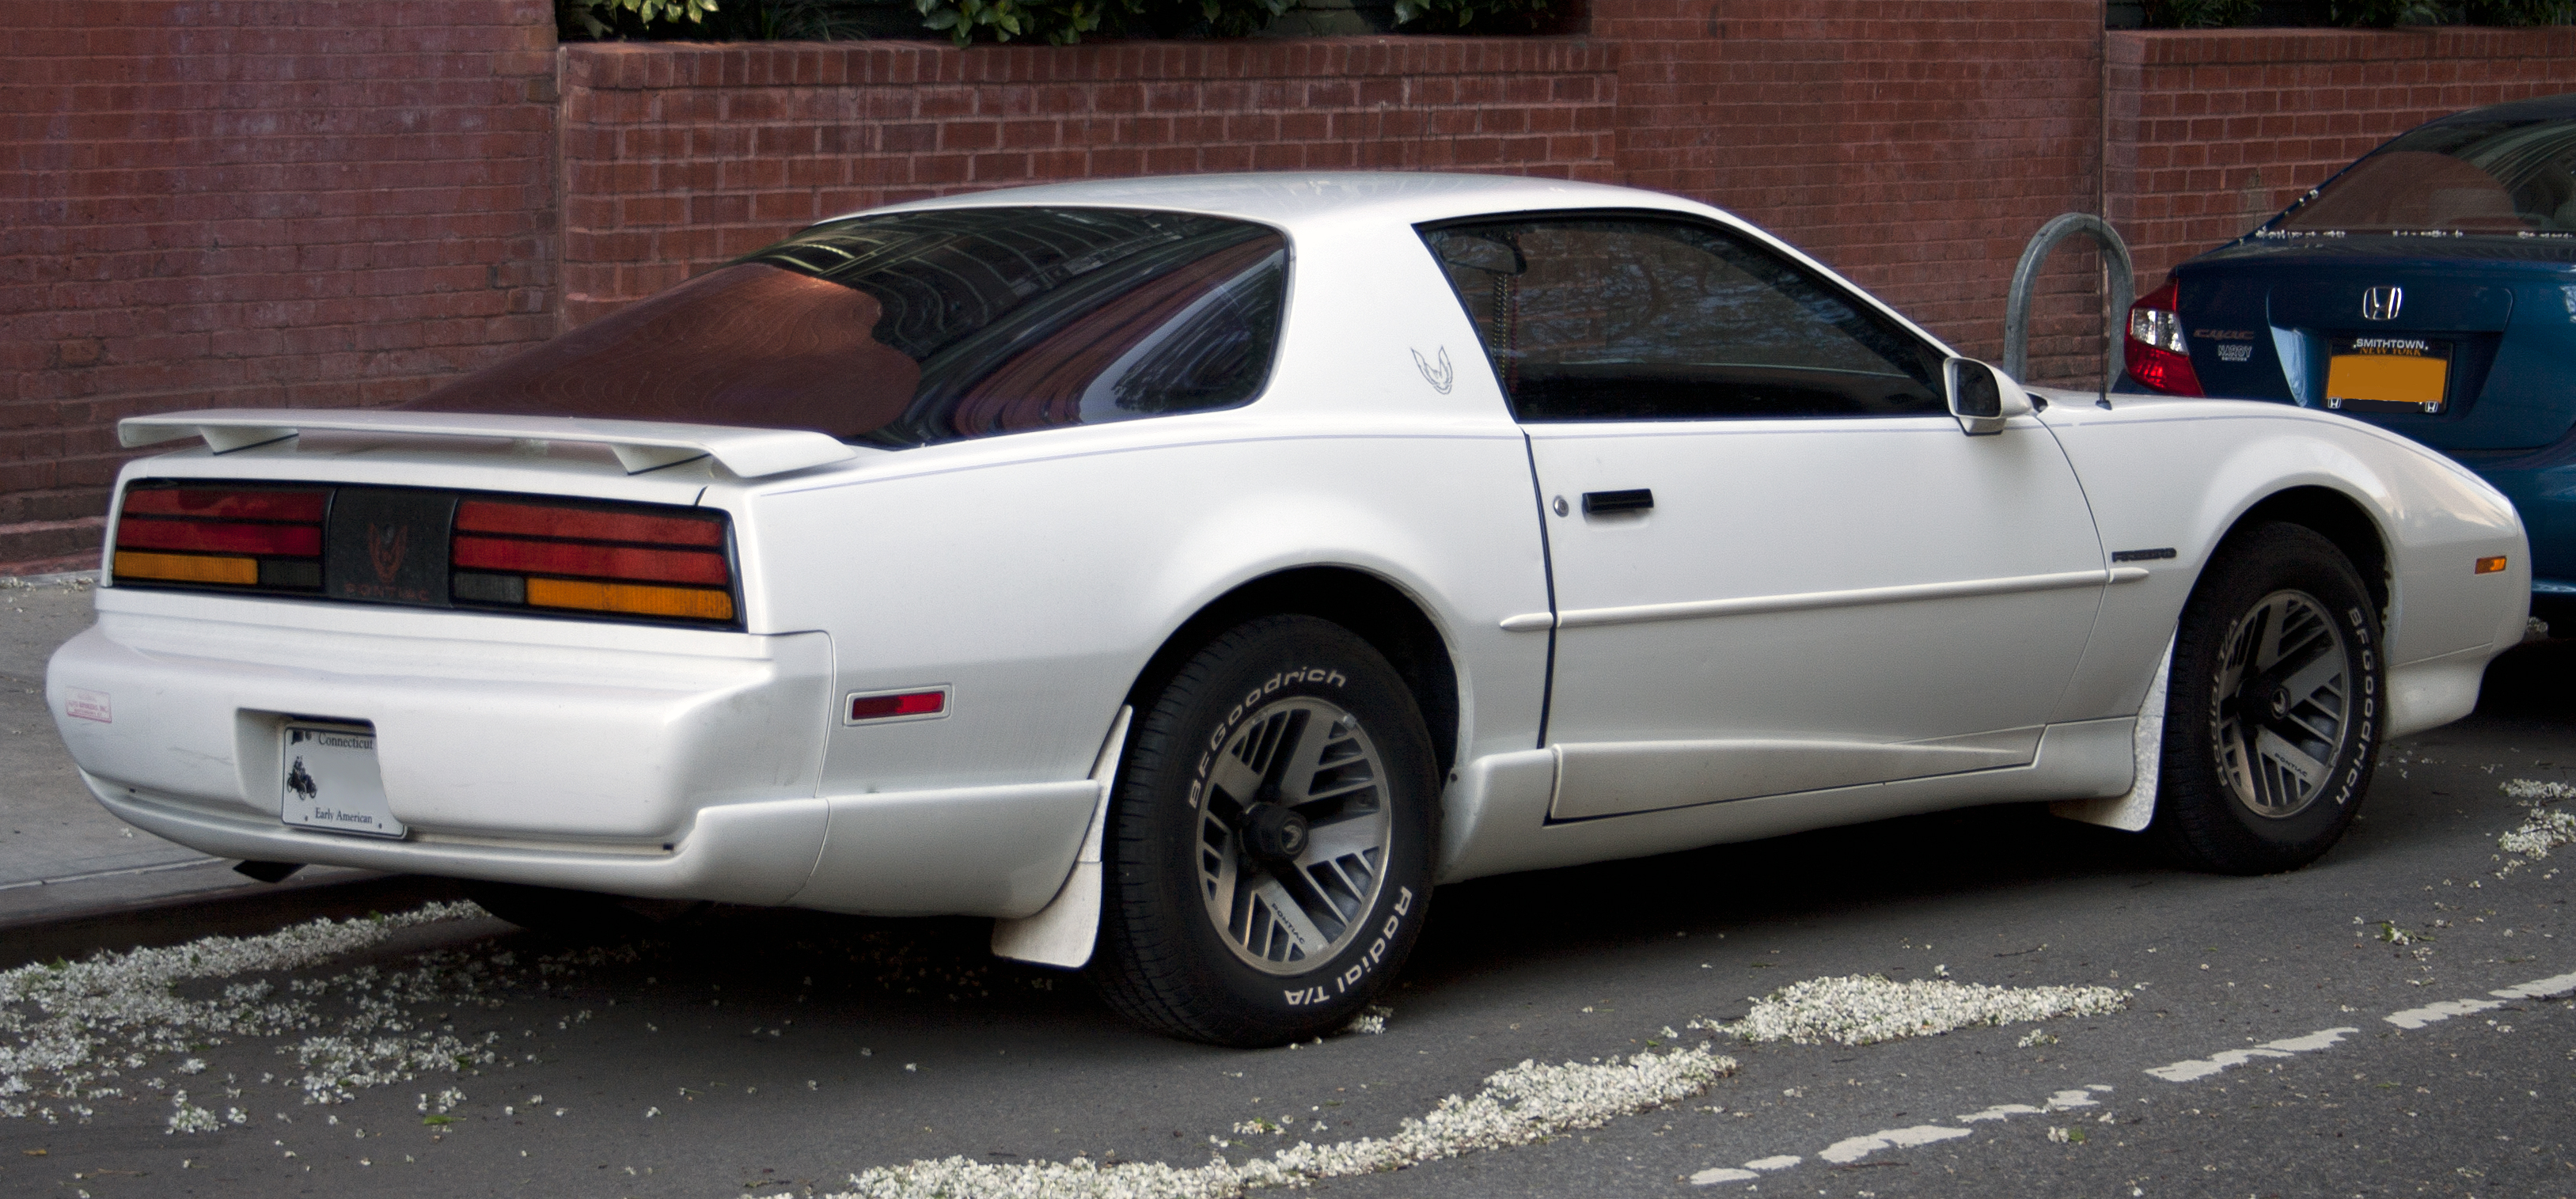 File:1992 Firebird V6.jpg - Wikimedia Commons